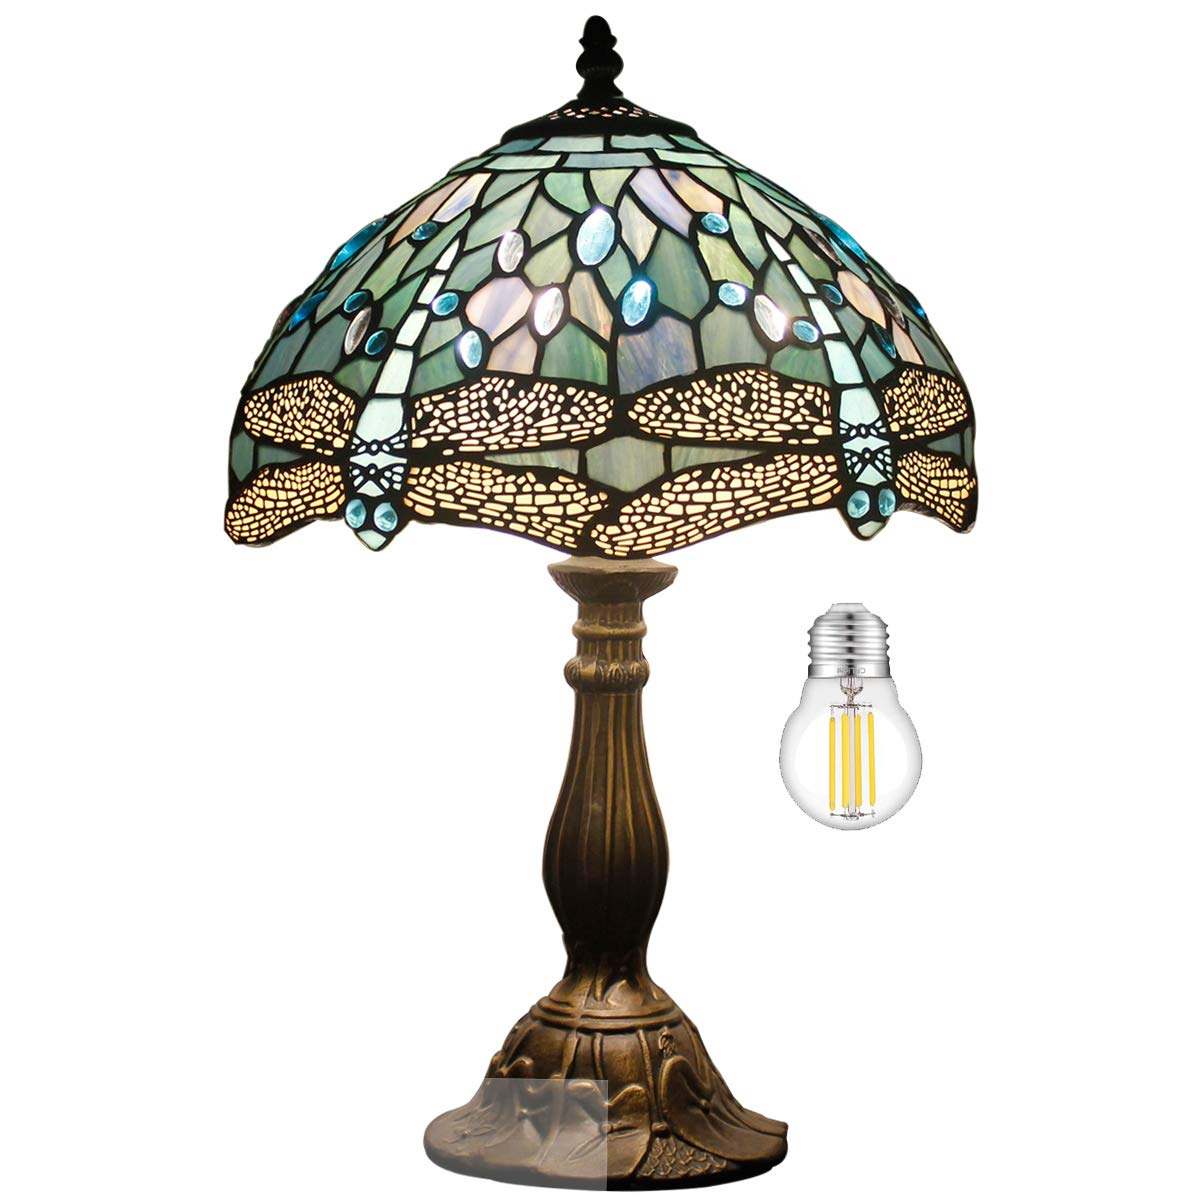 Tiffany Table Lamp W12H18 Inch Tall(LED Bulb Included)Sea Blue Stained Glass Dragonfly Style Shade Antique Base S147 WERFACTORY Desk Reading Light Livingroom Bedroom Bedside Study Bar Art Crafts Gifts